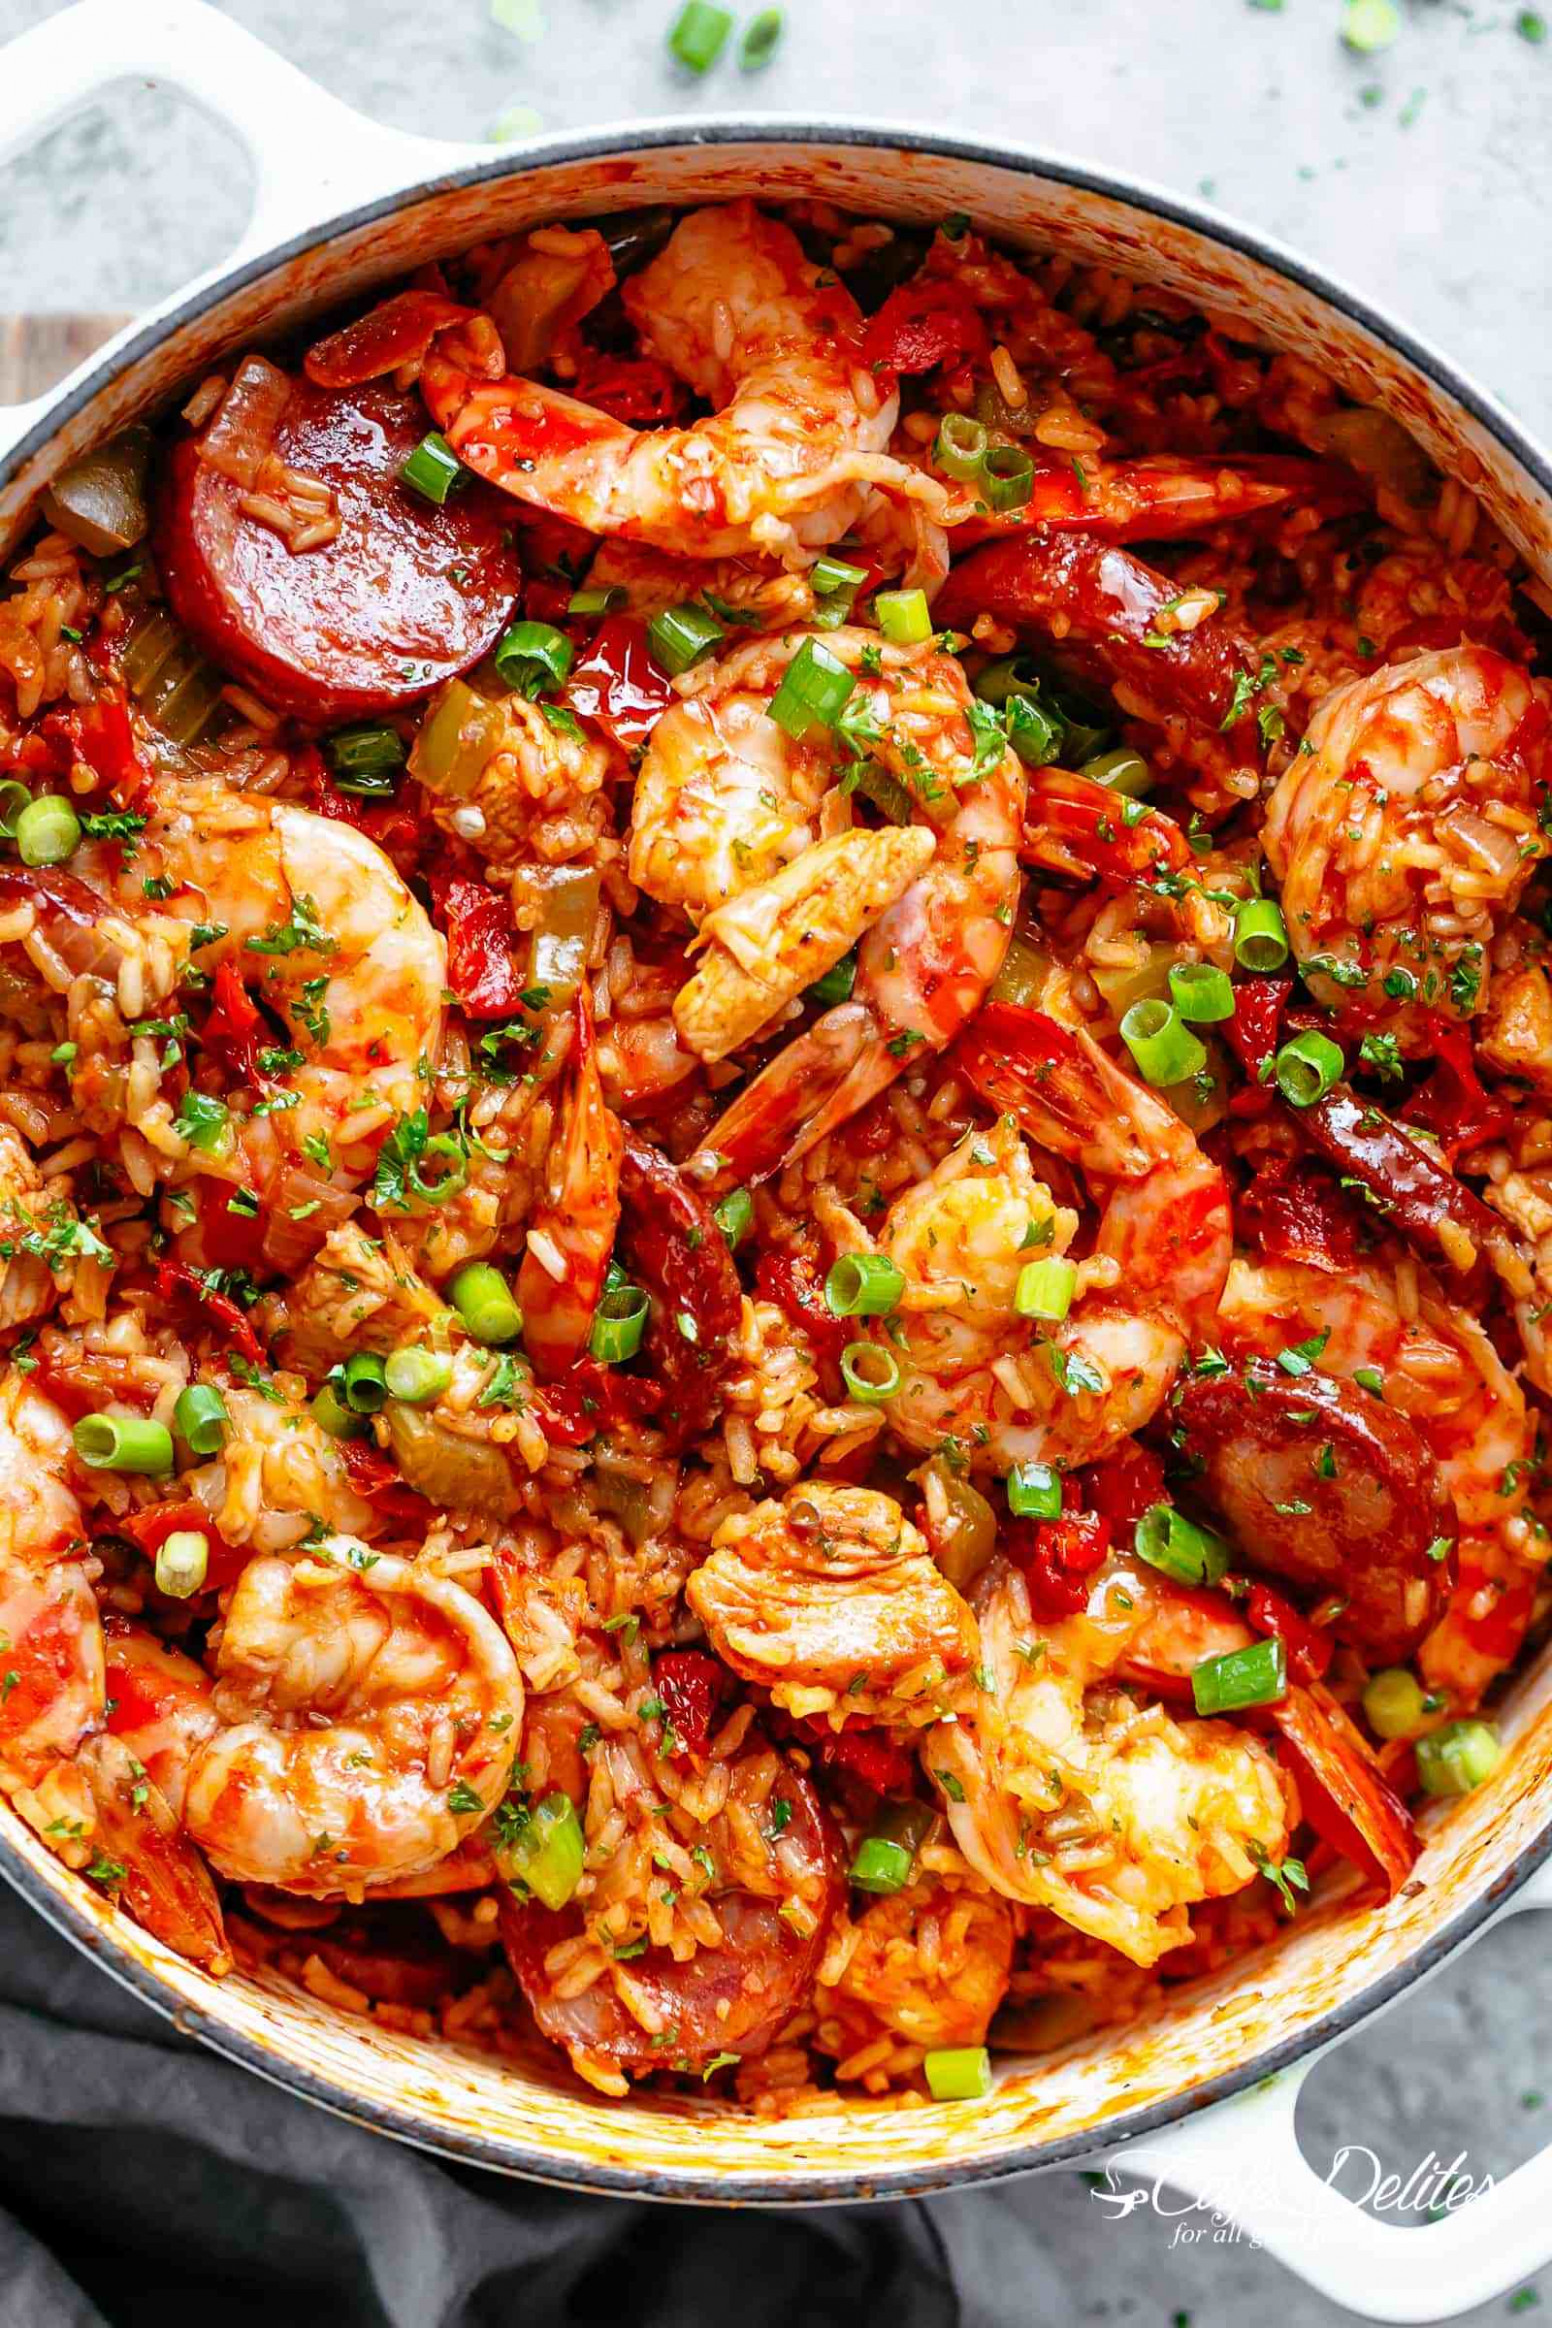 75+ Delicious & Healthy Chicken Recipes | Health Wholeness - healthy recipes jambalaya